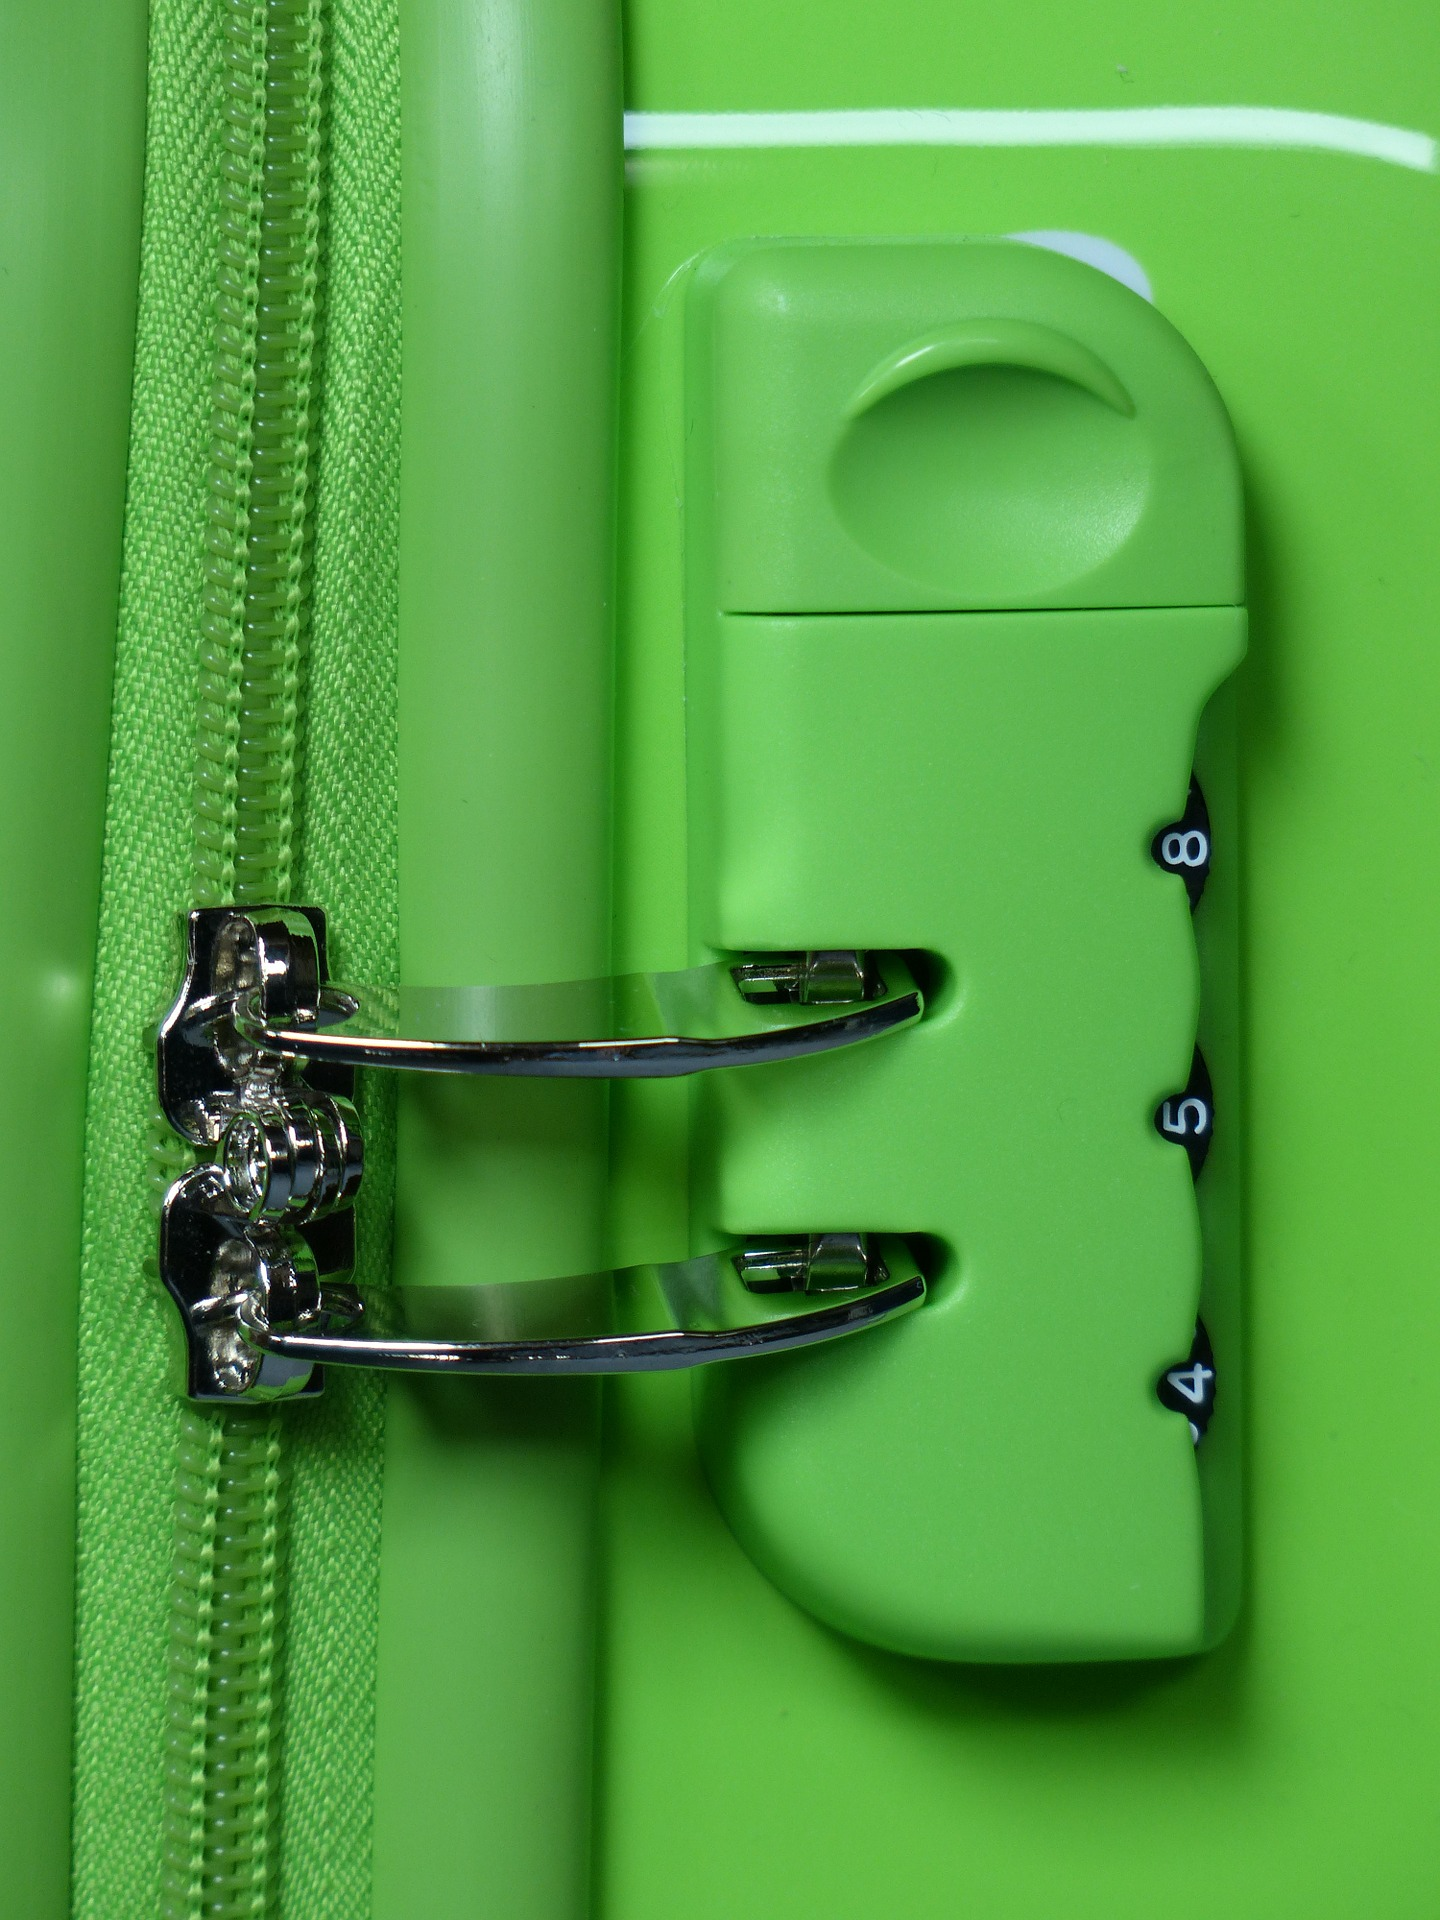 Fixed-Locking-System-For-Luggage-1